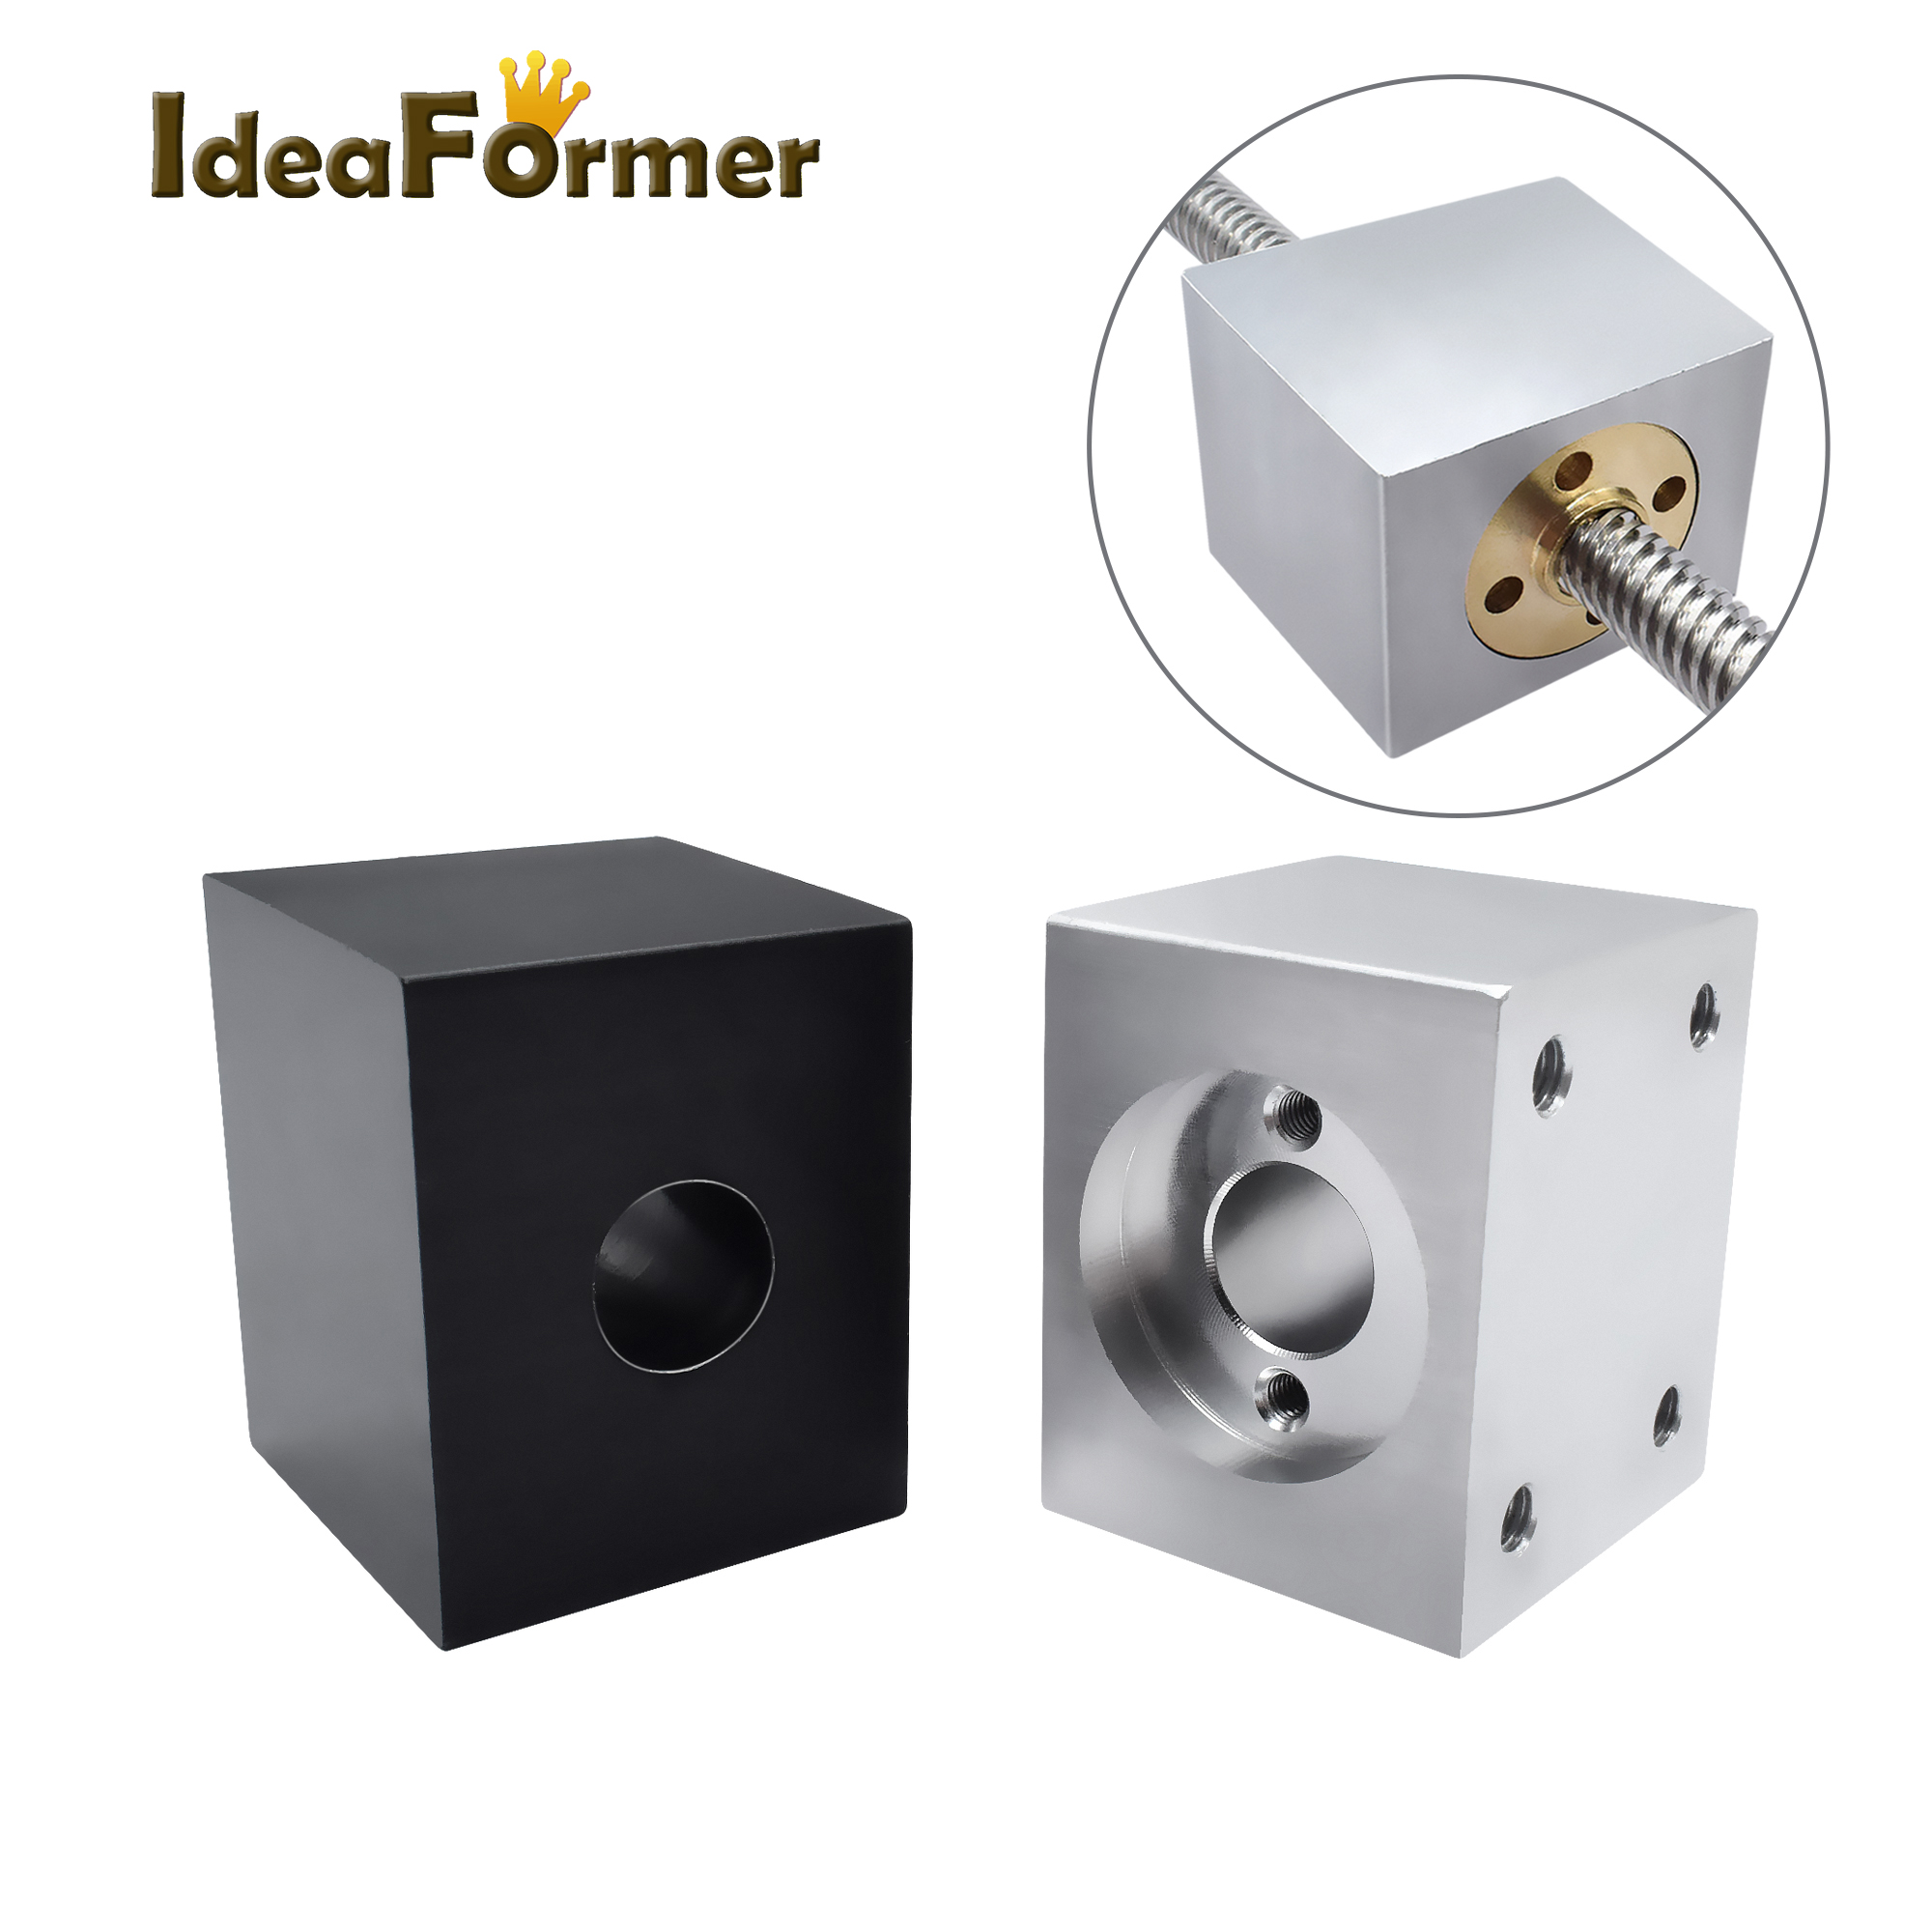 Ideaformer T8 Lead Screw Nut Housing Bracket For 3D Printer Parts T8 Trapezoidal Lead Screw Conversion Nut Seat Aluminum Block